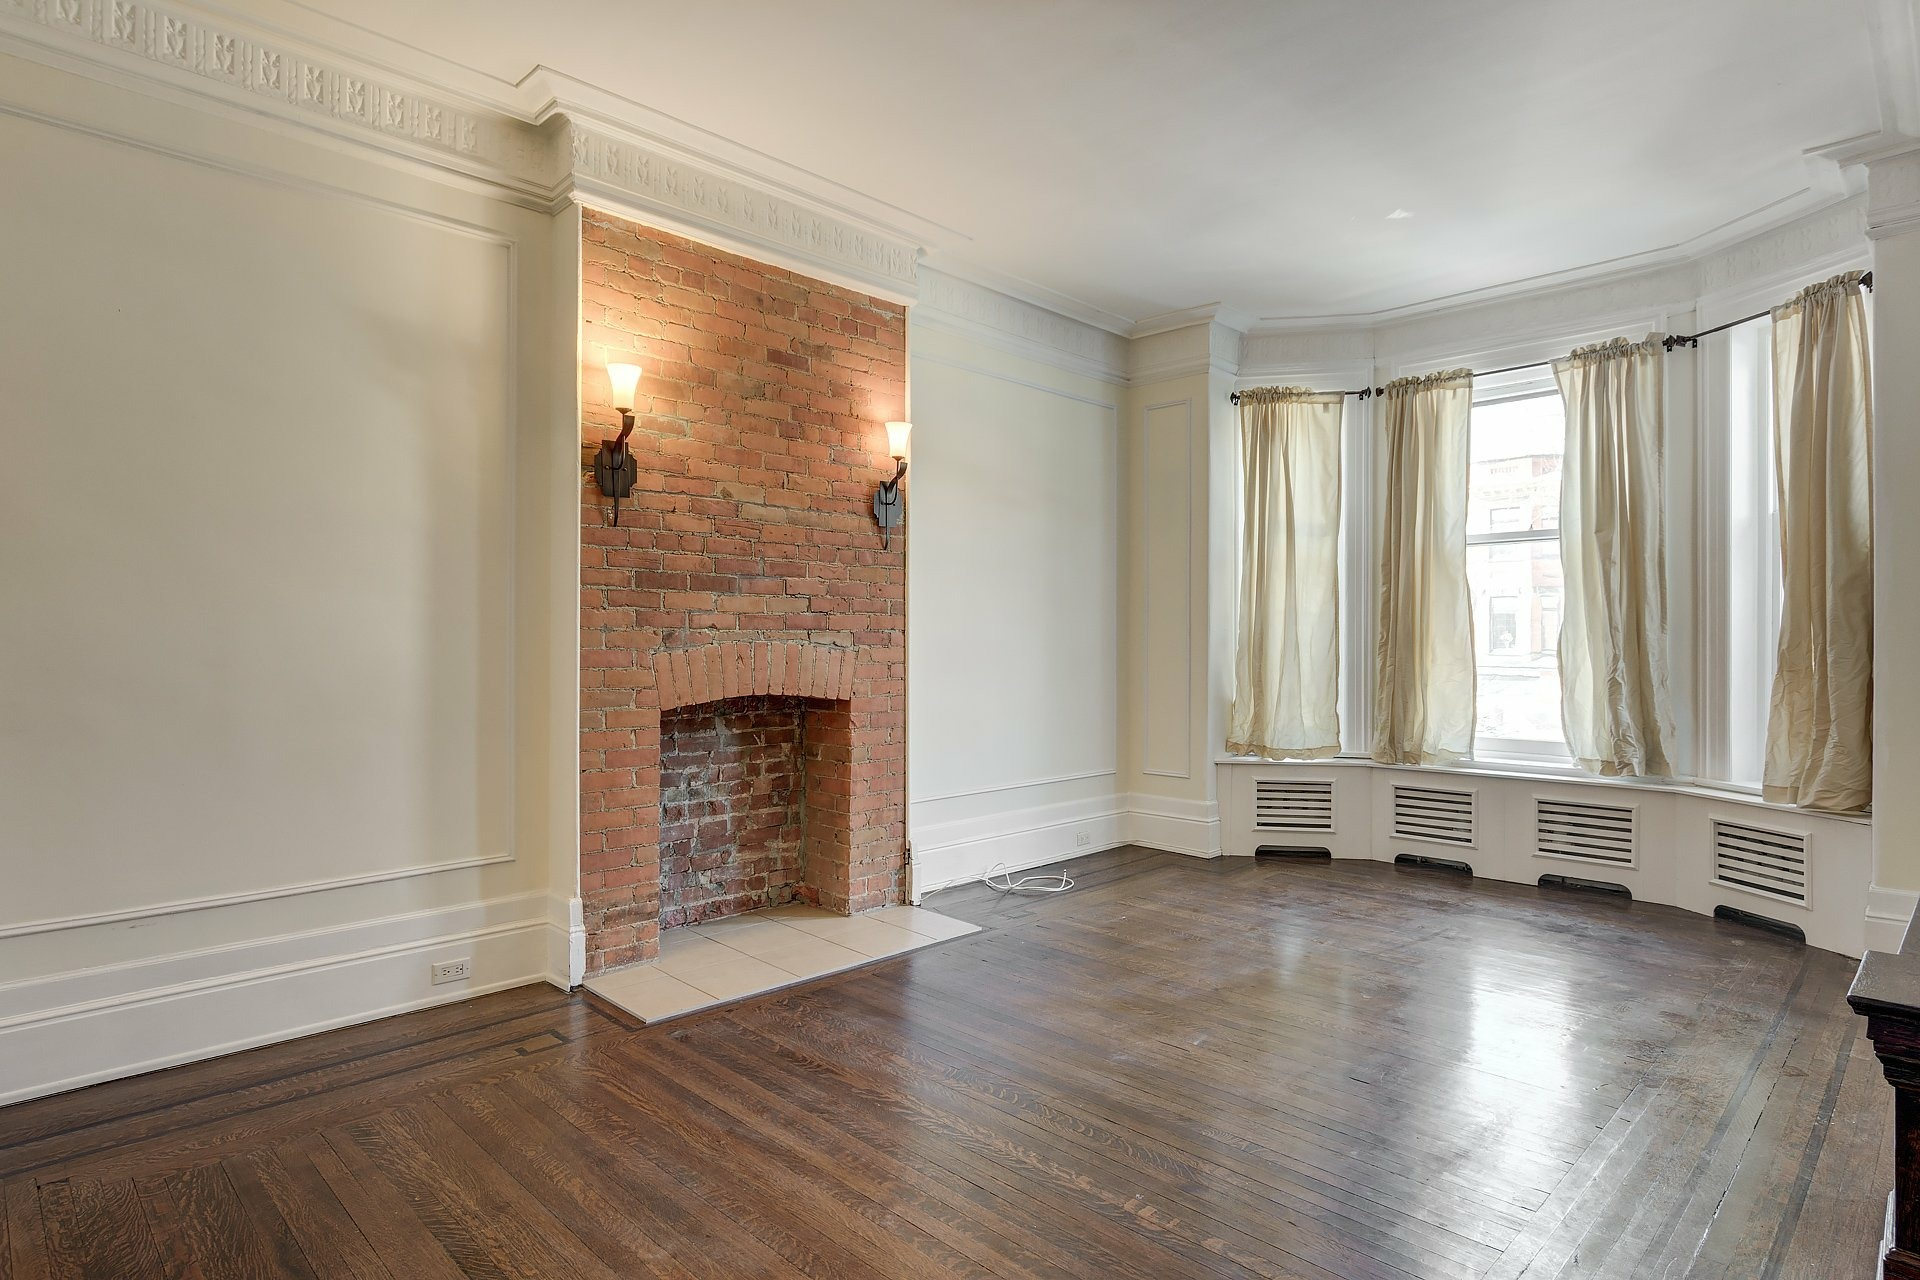 image 3 - House For rent Westmount - 9 rooms